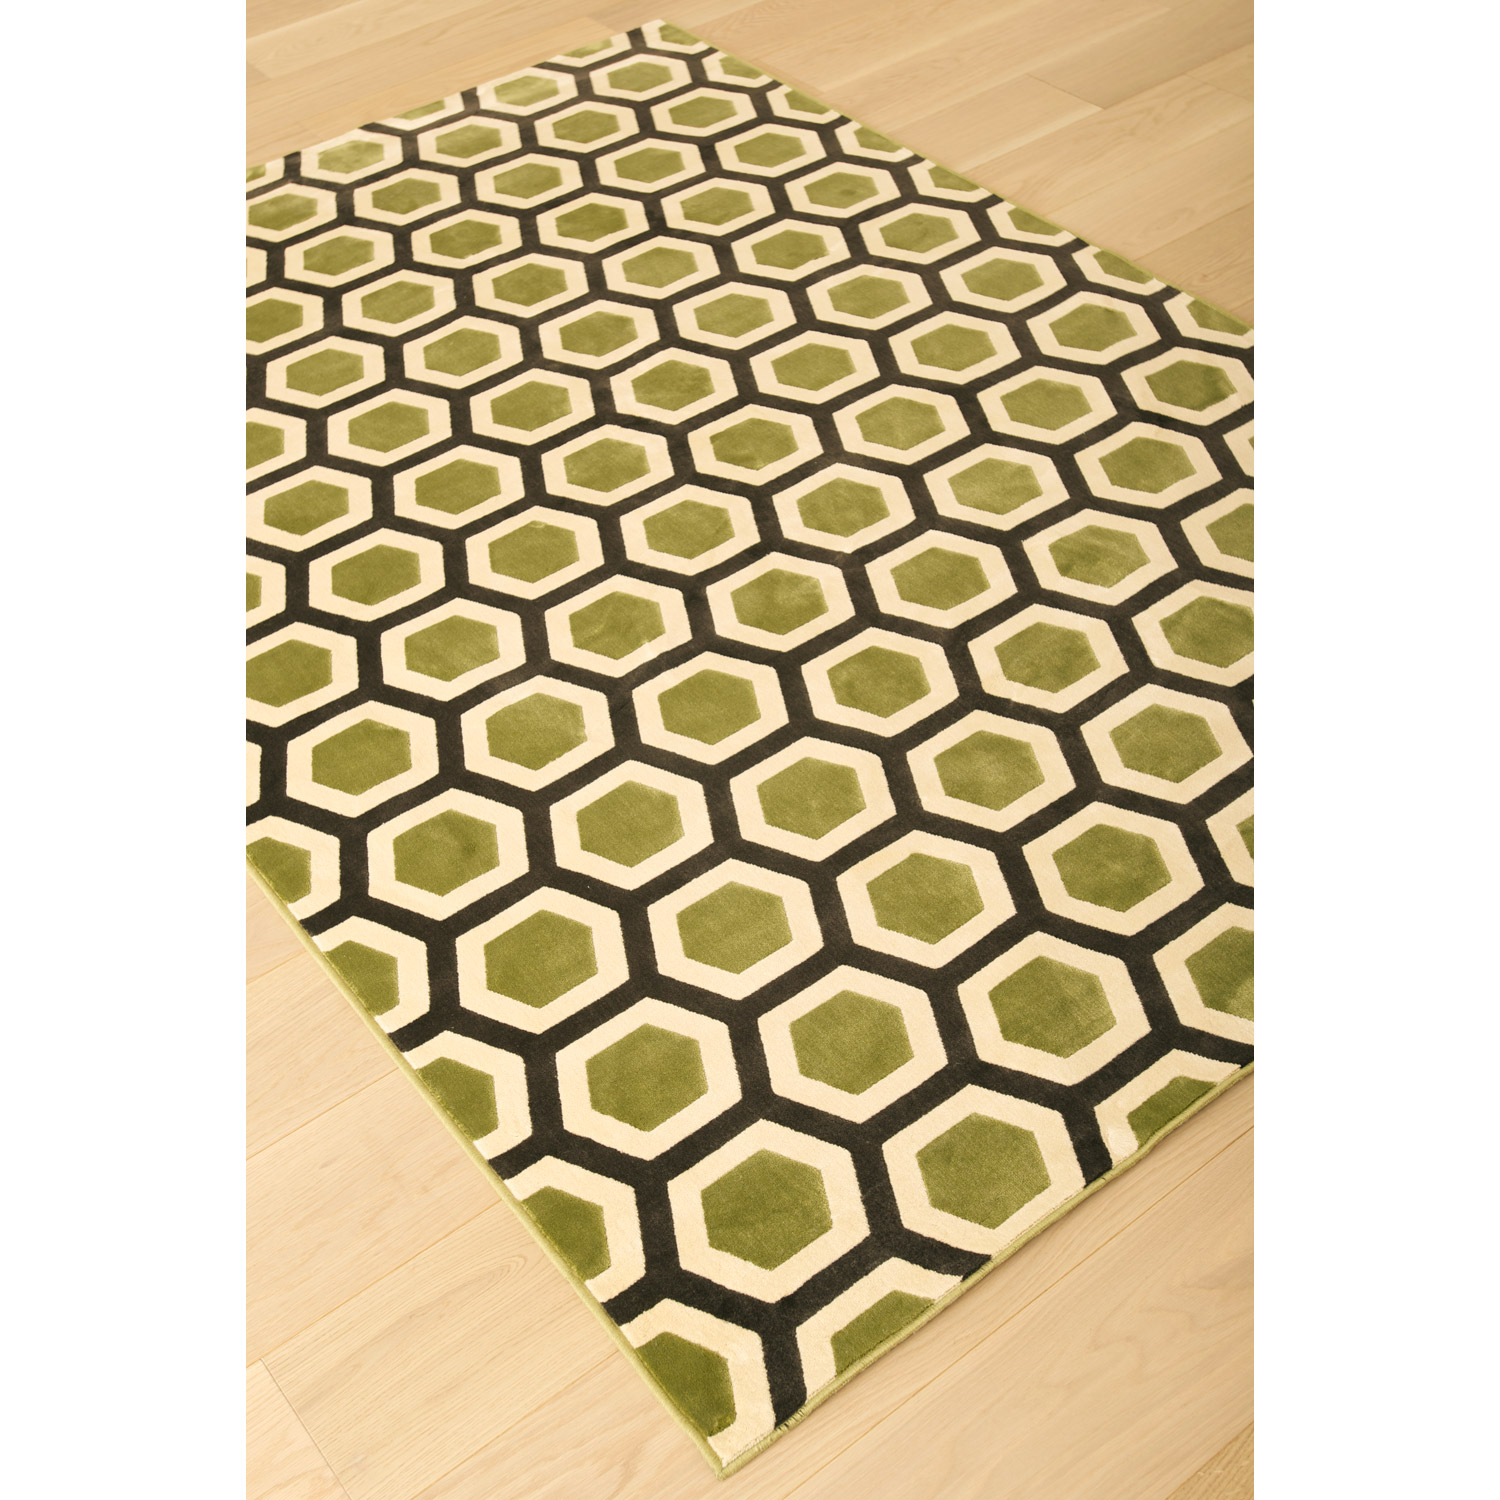 Sonoma Honeycomb Rug - Apple Green